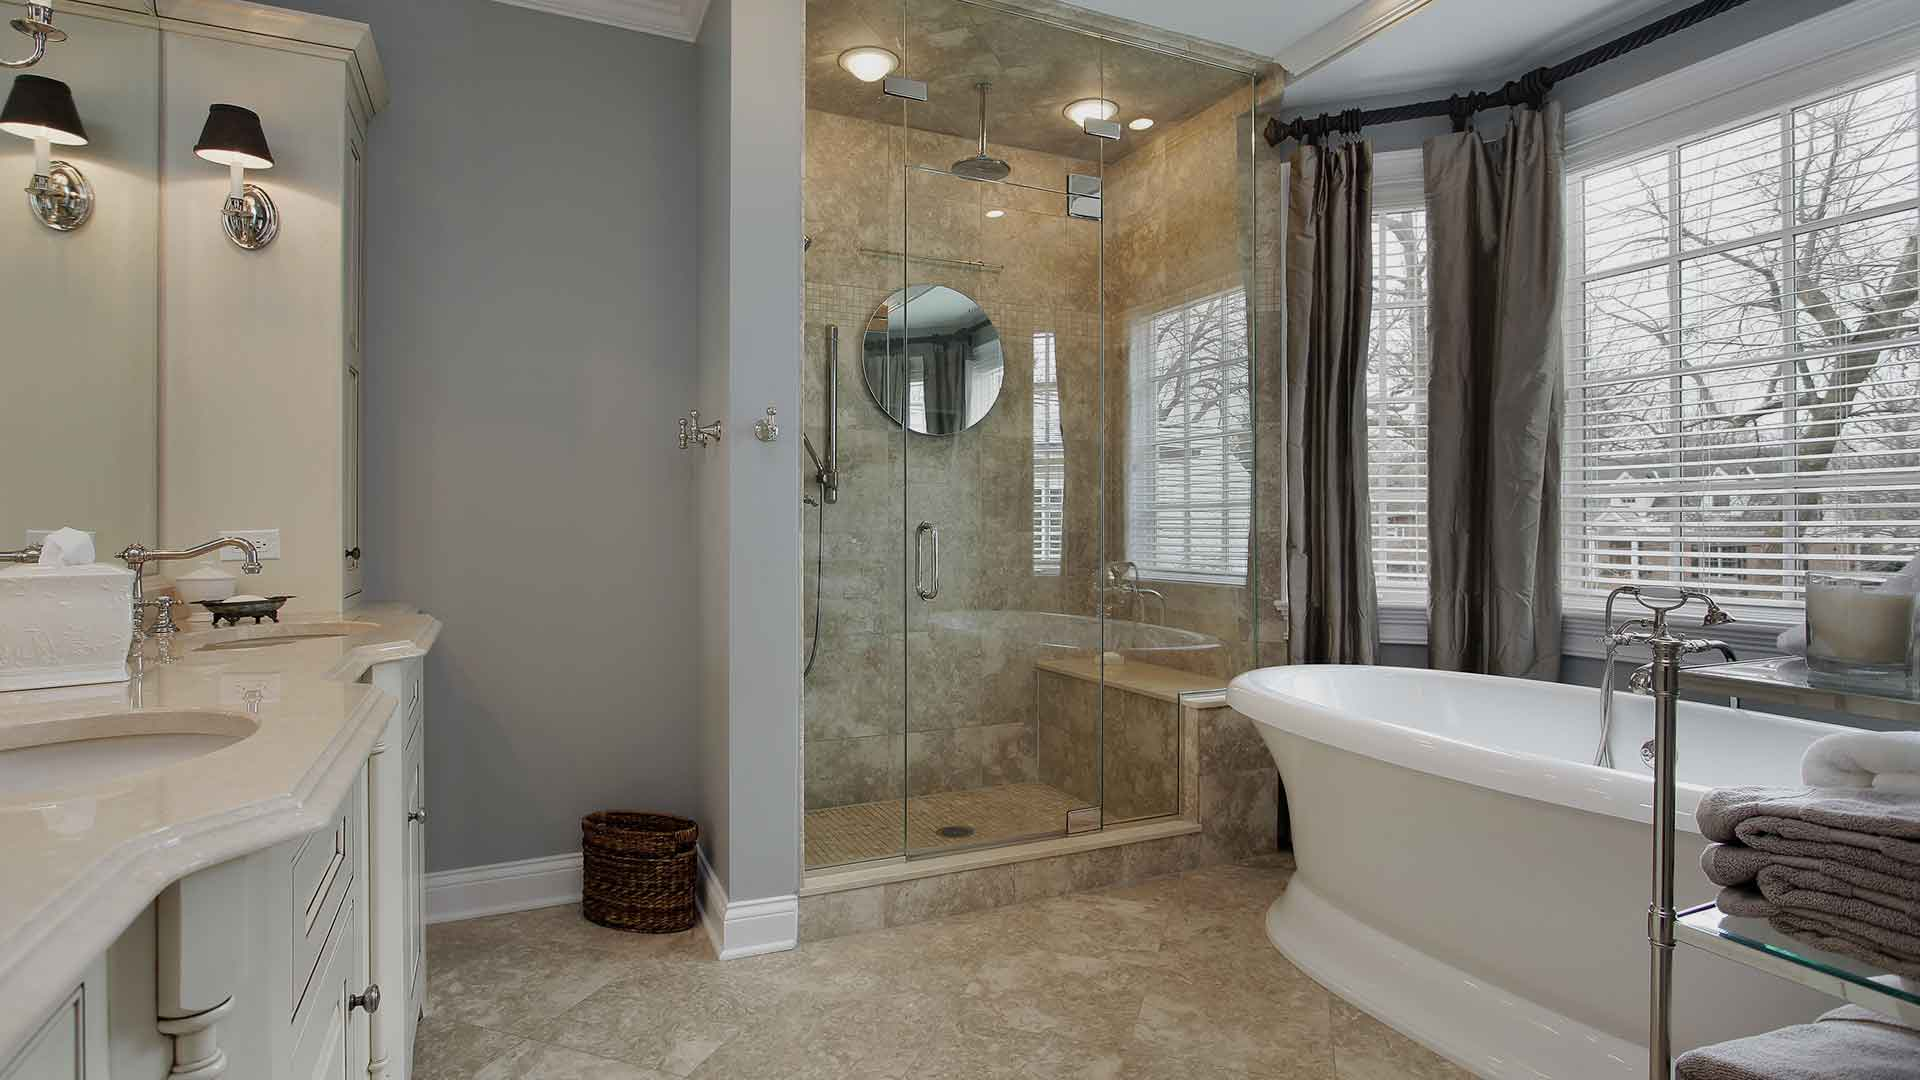 Best Bathroom Remodels Baybrook Remodelers Inc.